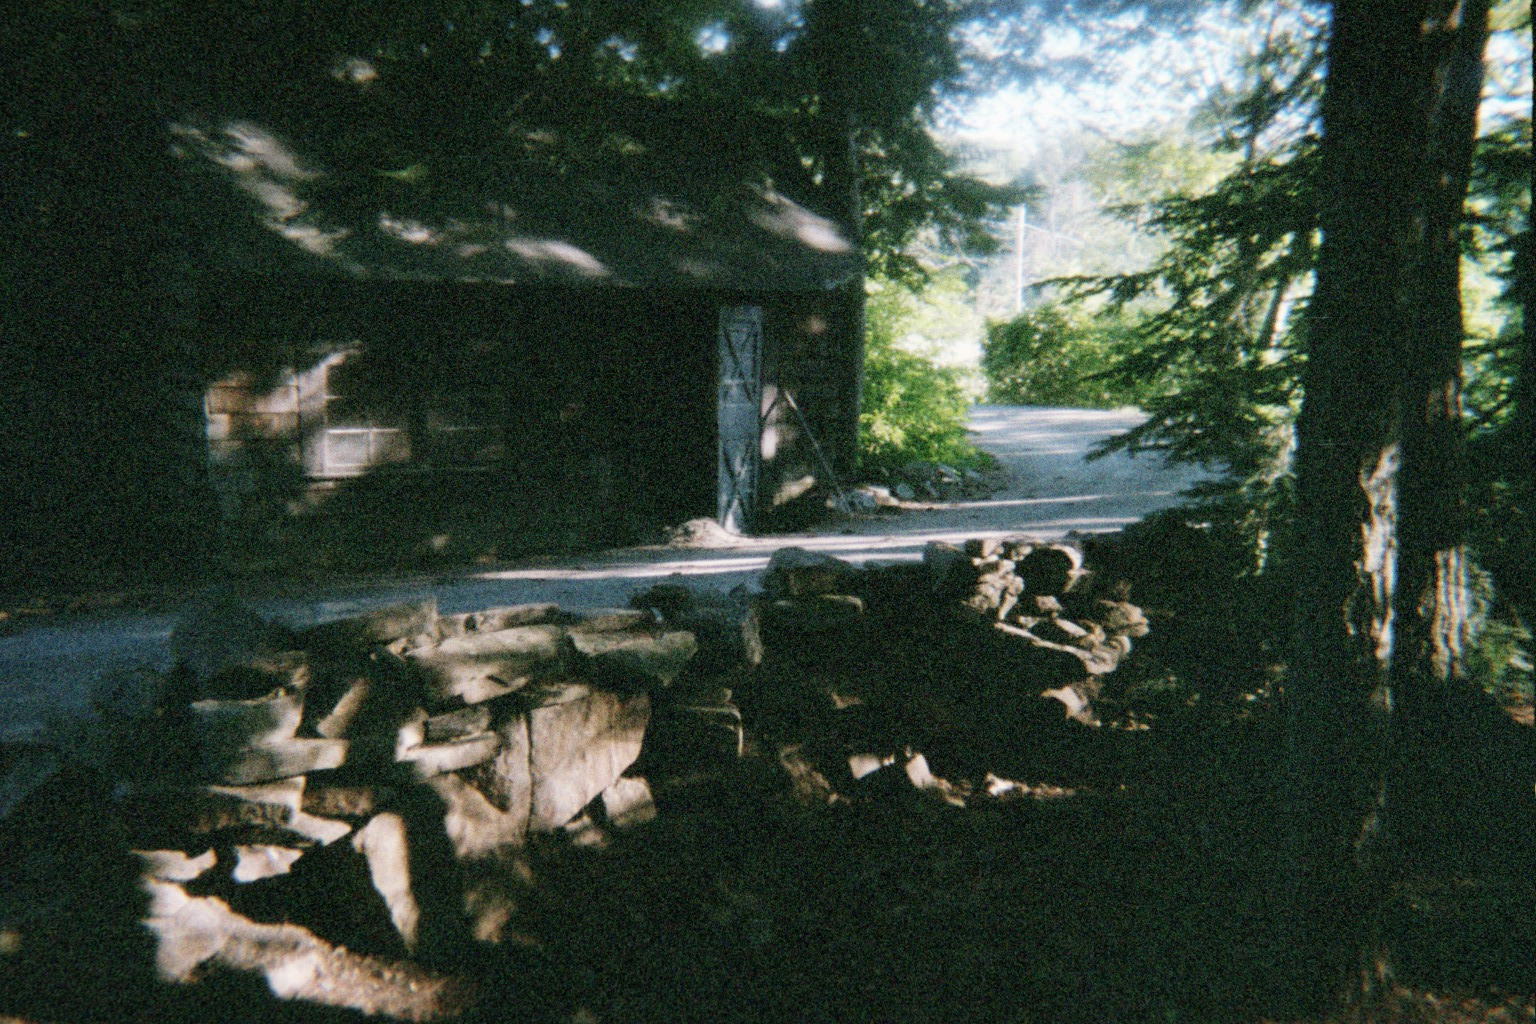 Neddie's Cabin on the East side of the house